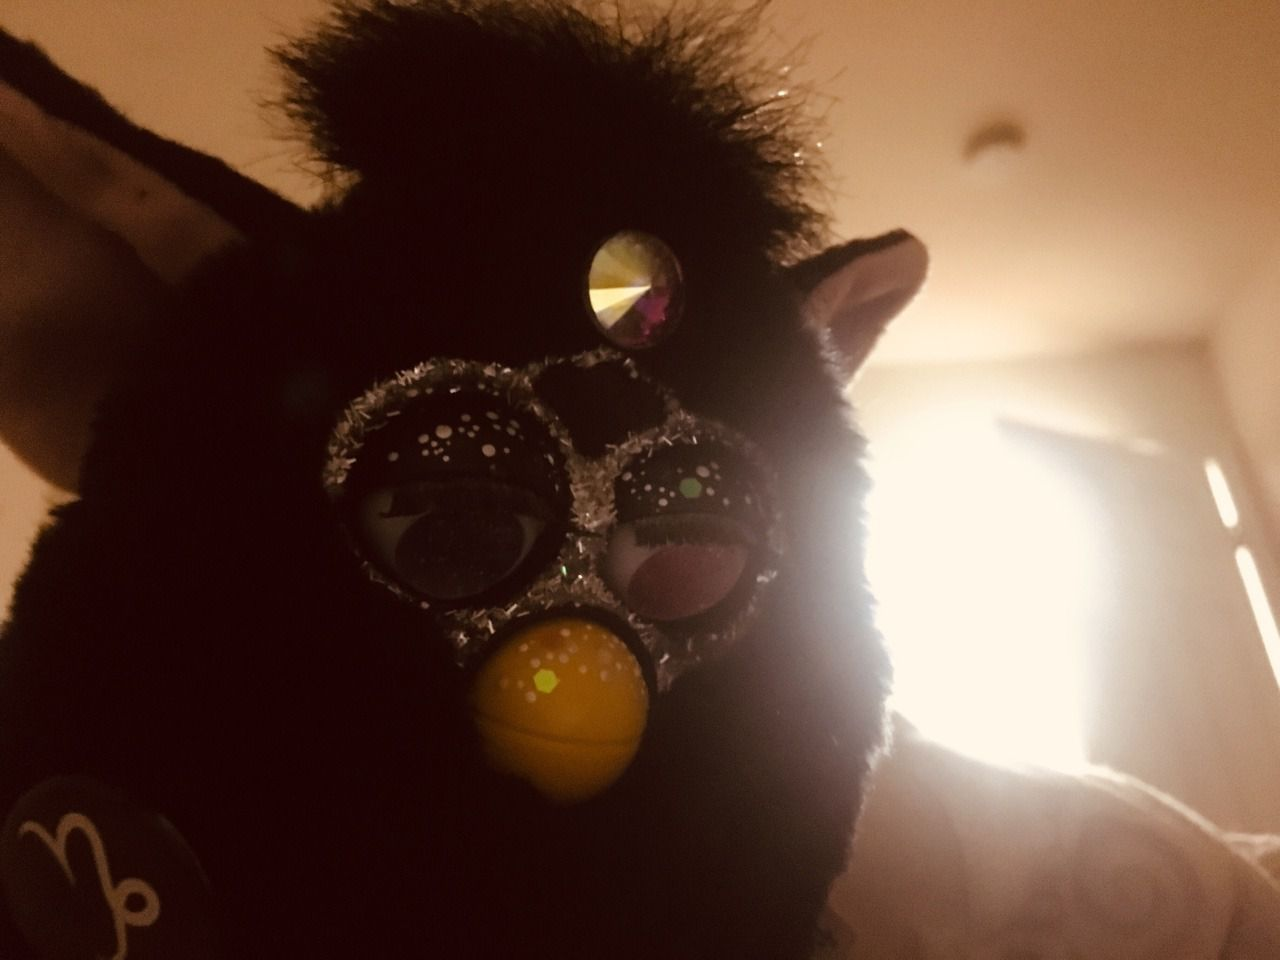 Meet the Furby collectors of Tumblr - Vox